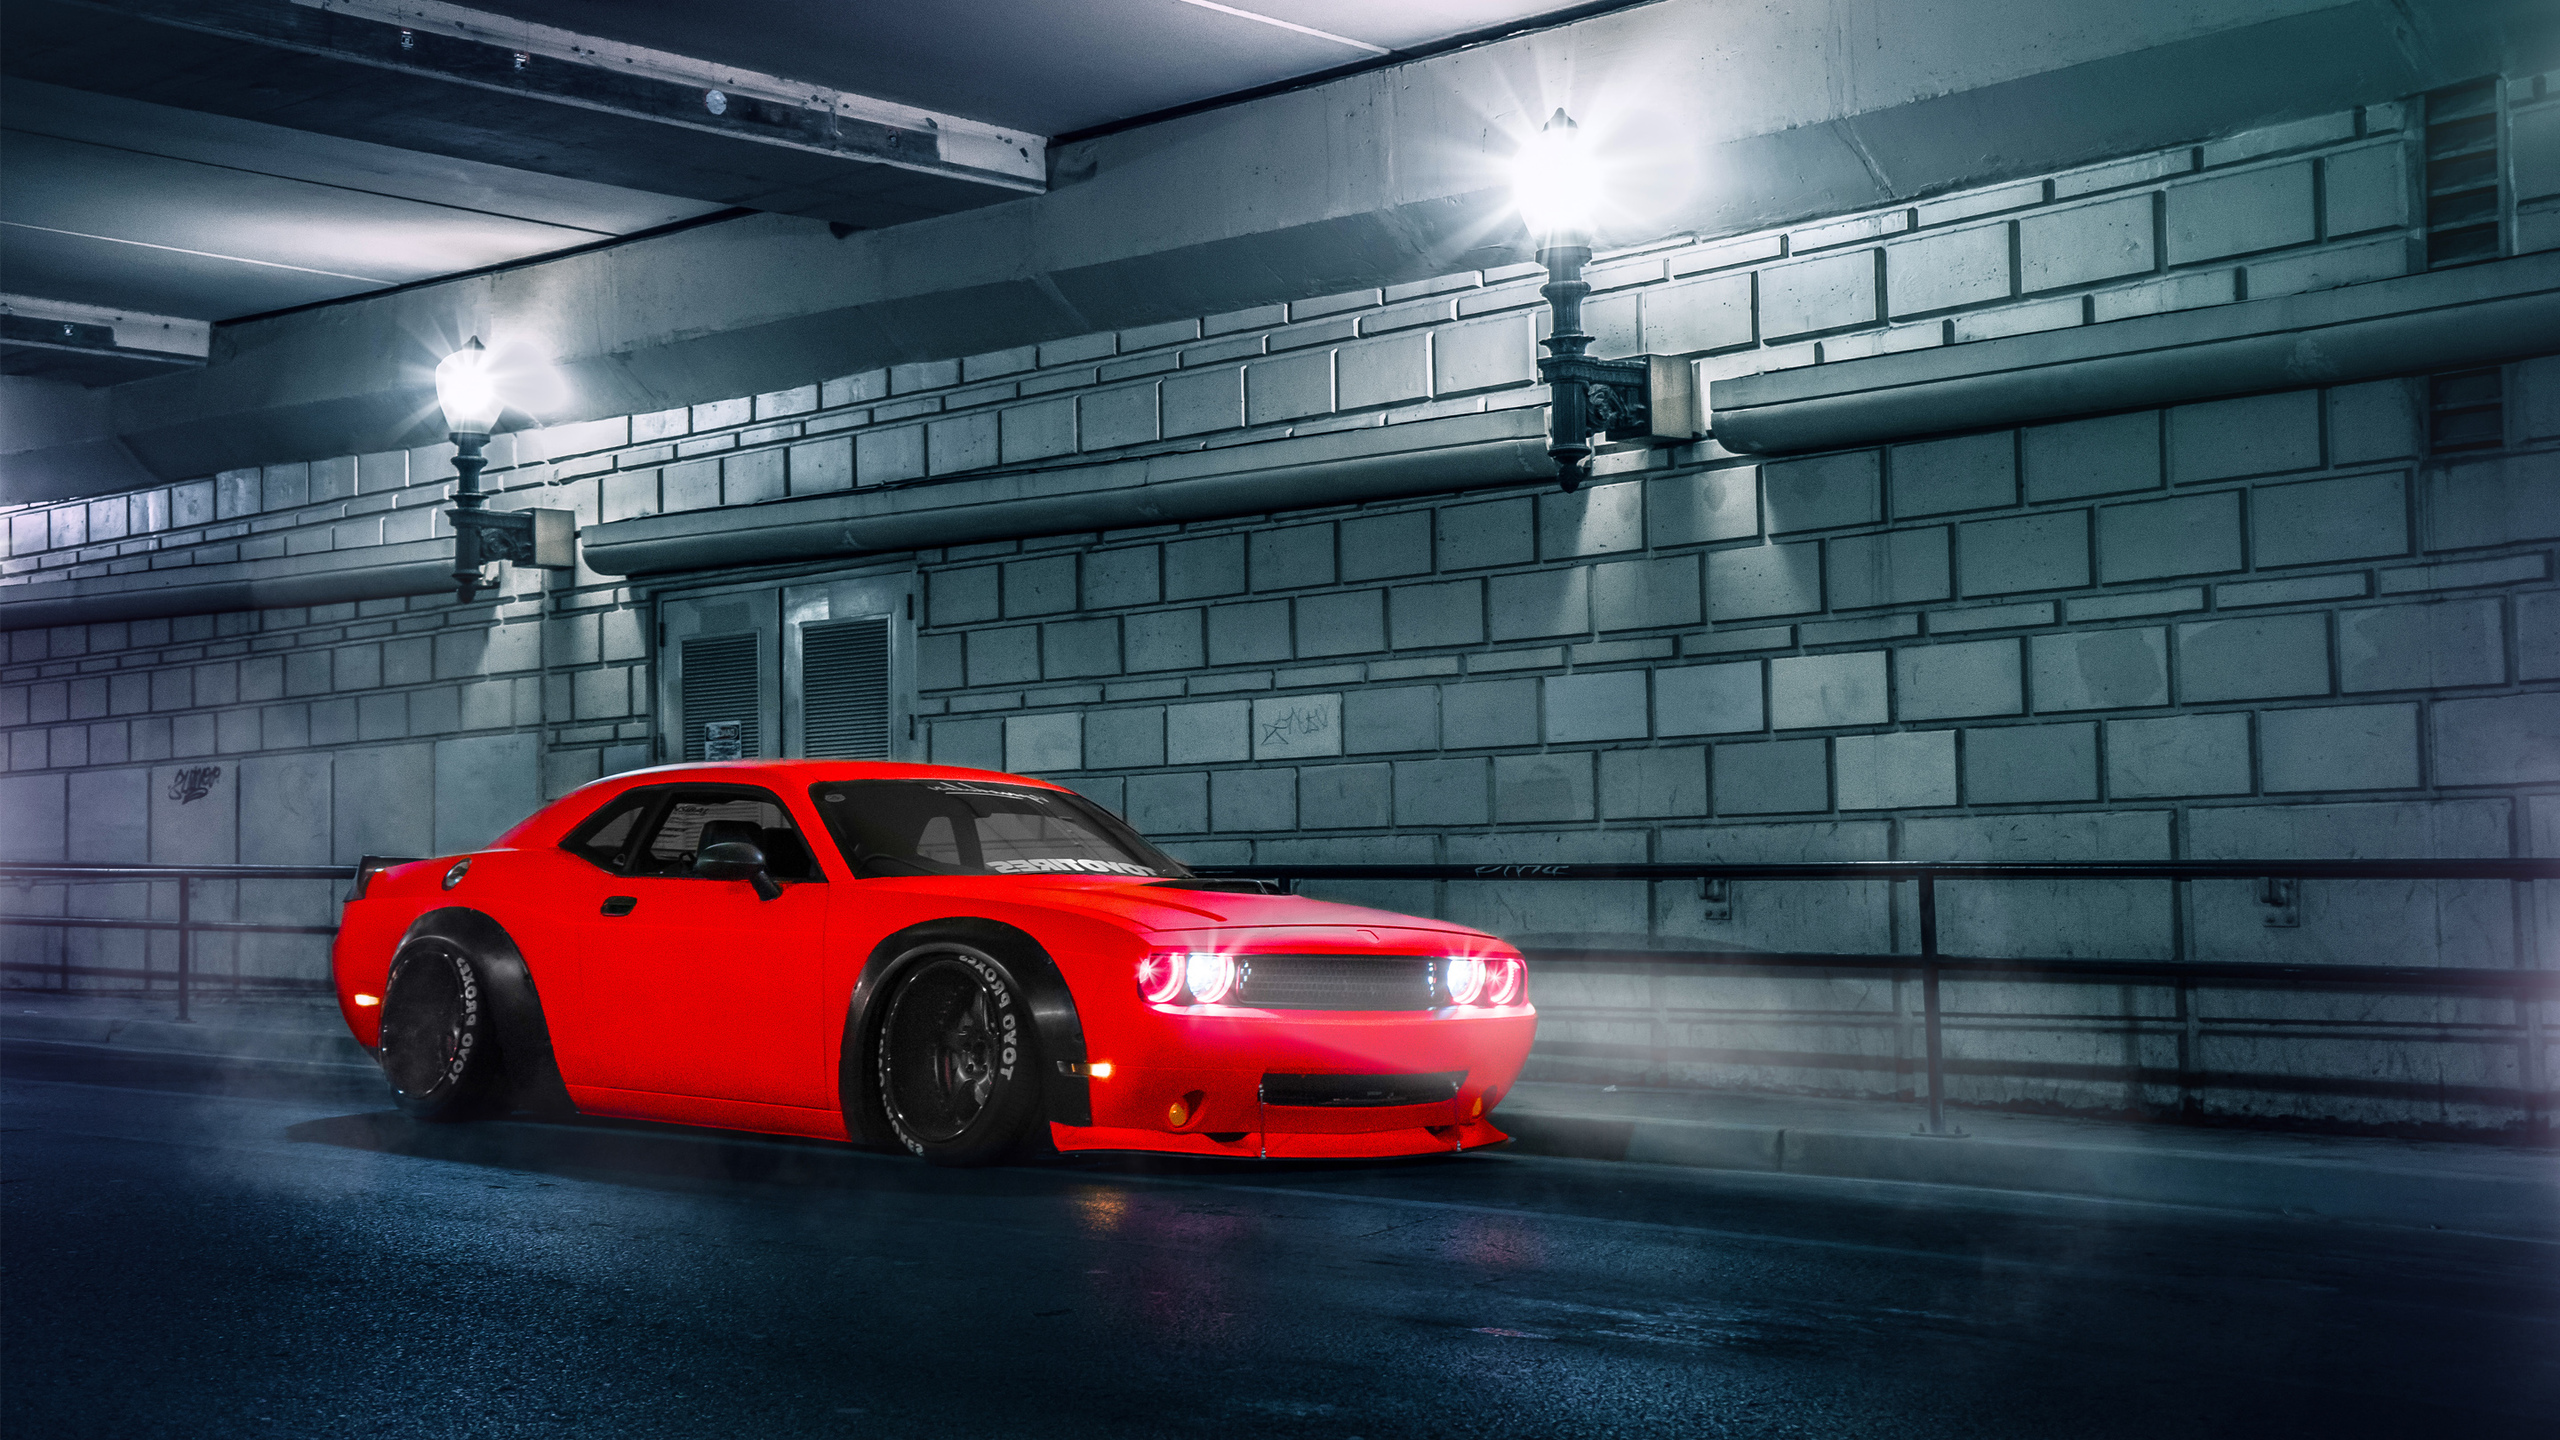 2015 Dodge Challenger SRT (2560x1440)